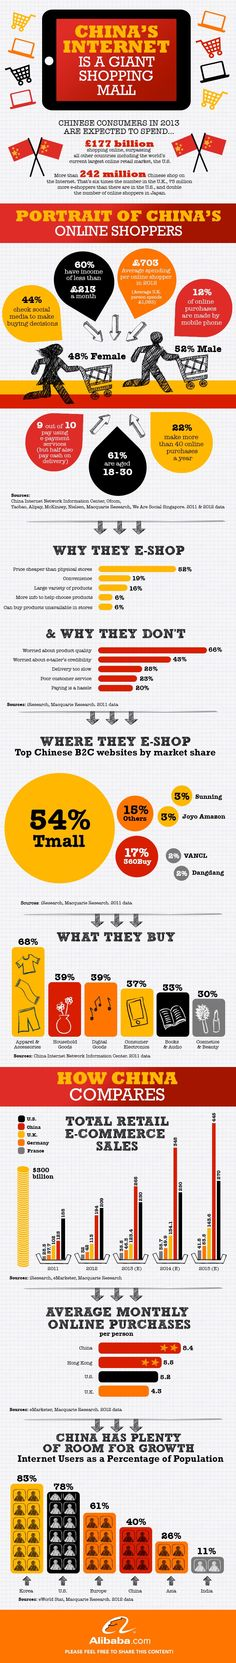 China's Internet #Infographic